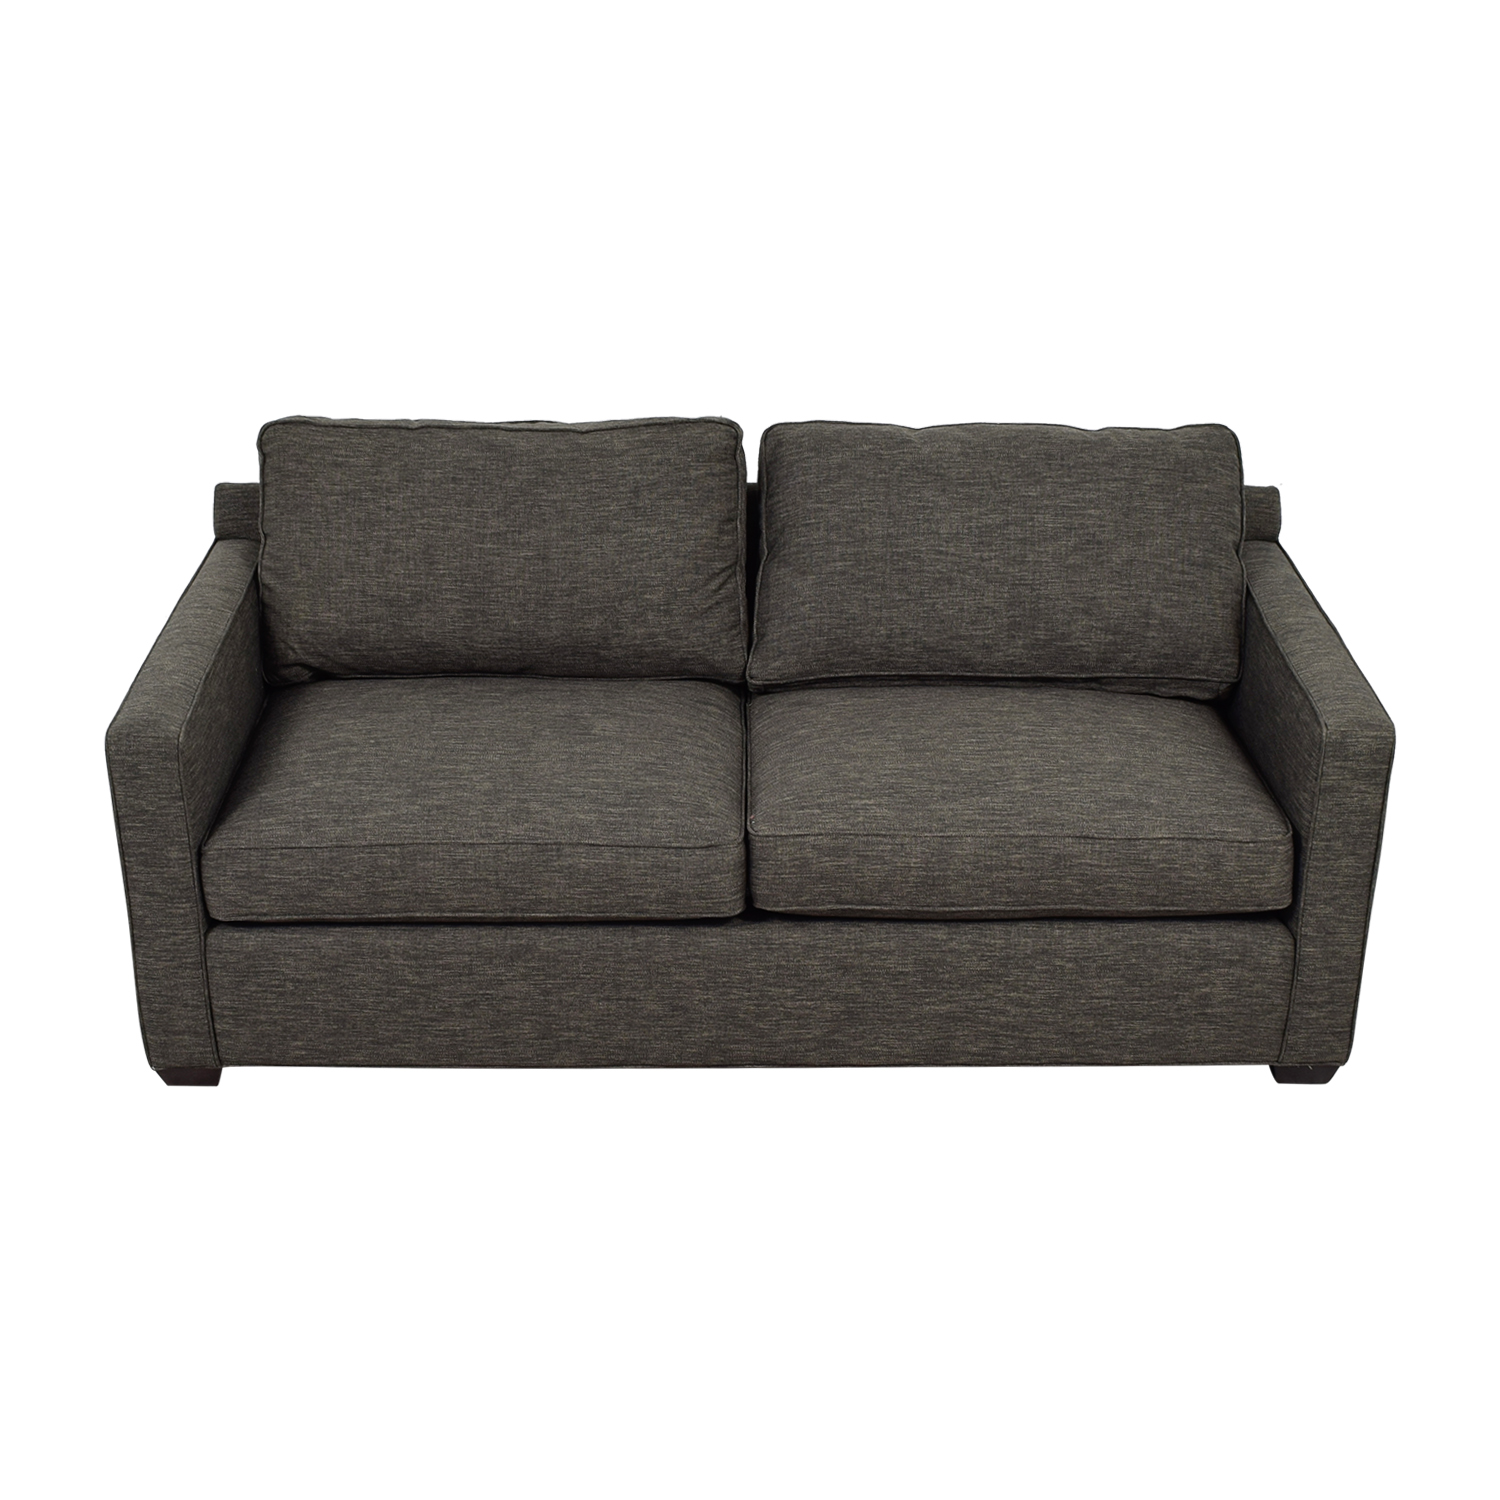 Crate & Barrel Crate & Barrel Davis Charcoal Two-Cushion Sofa on sale